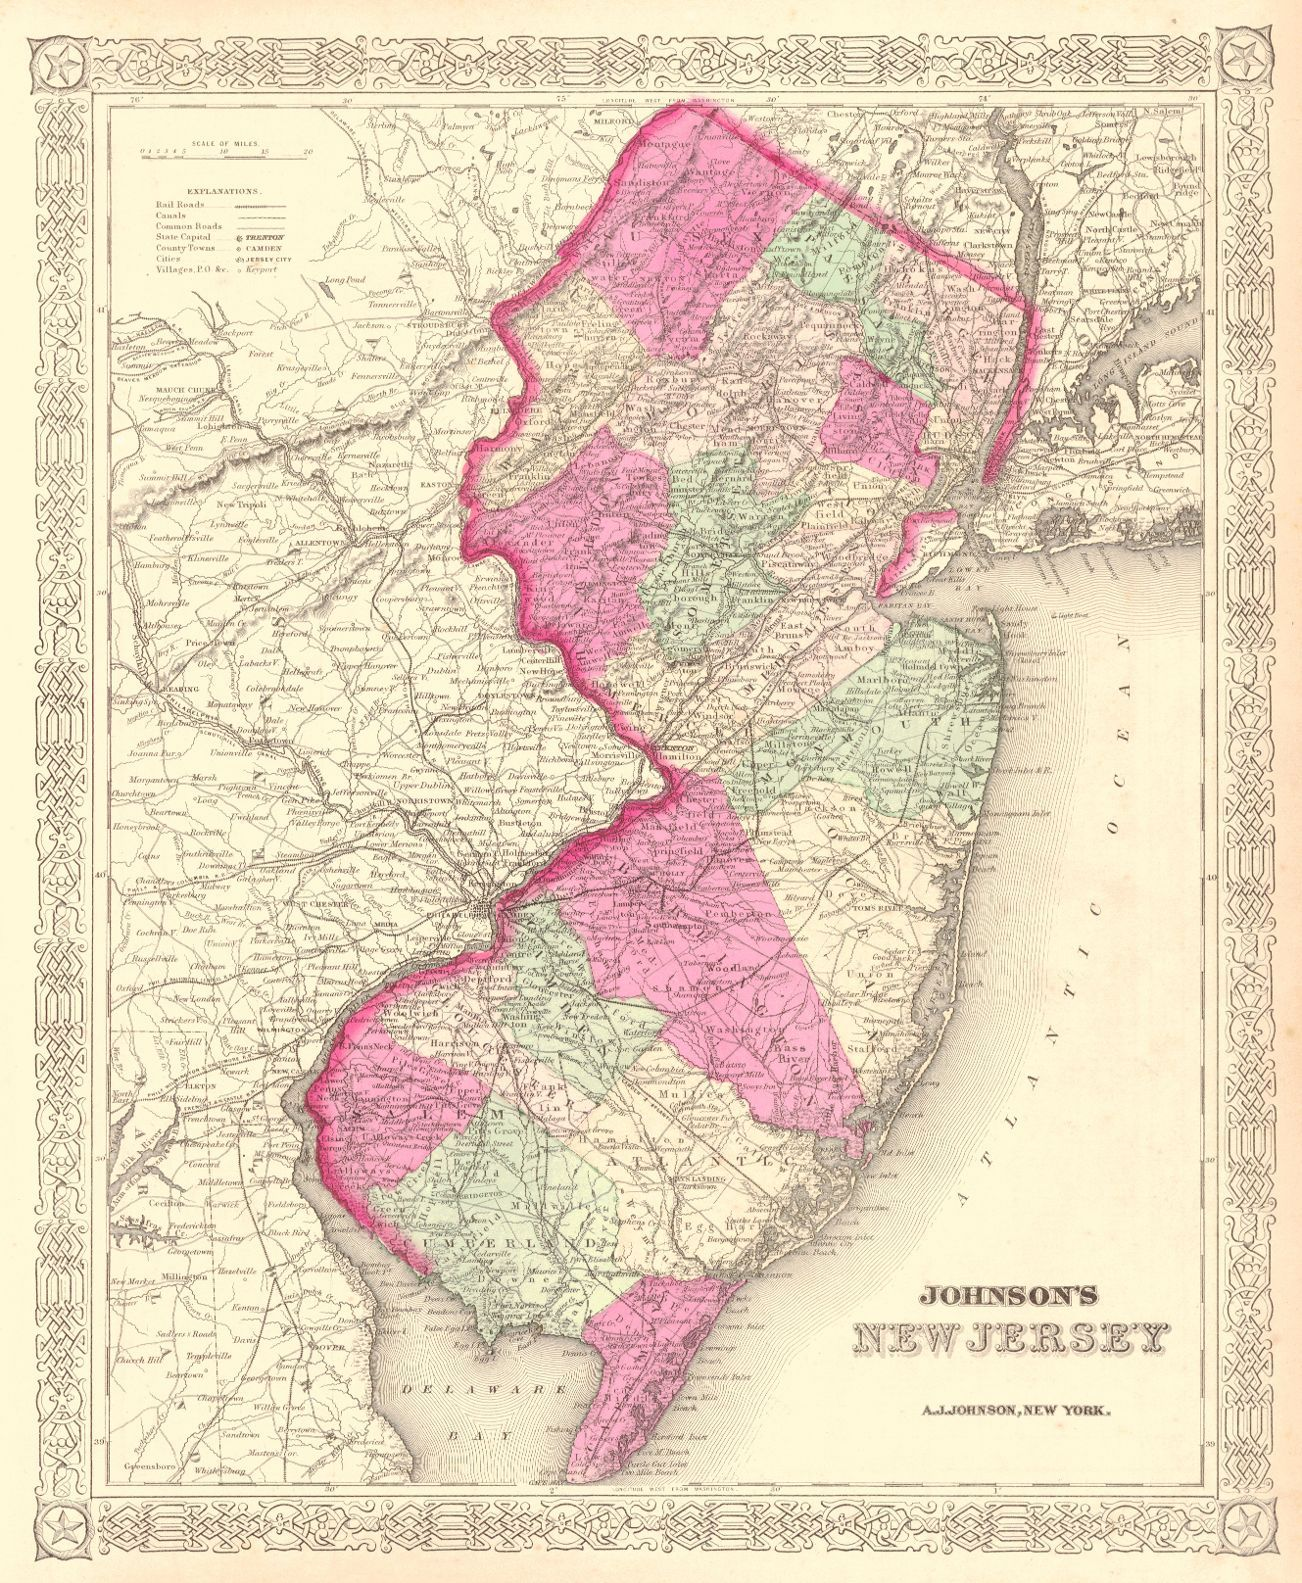 New York State Map With Counties And Cities.Map Antique Johnson S New Jersey A J Johnson 1866 New York